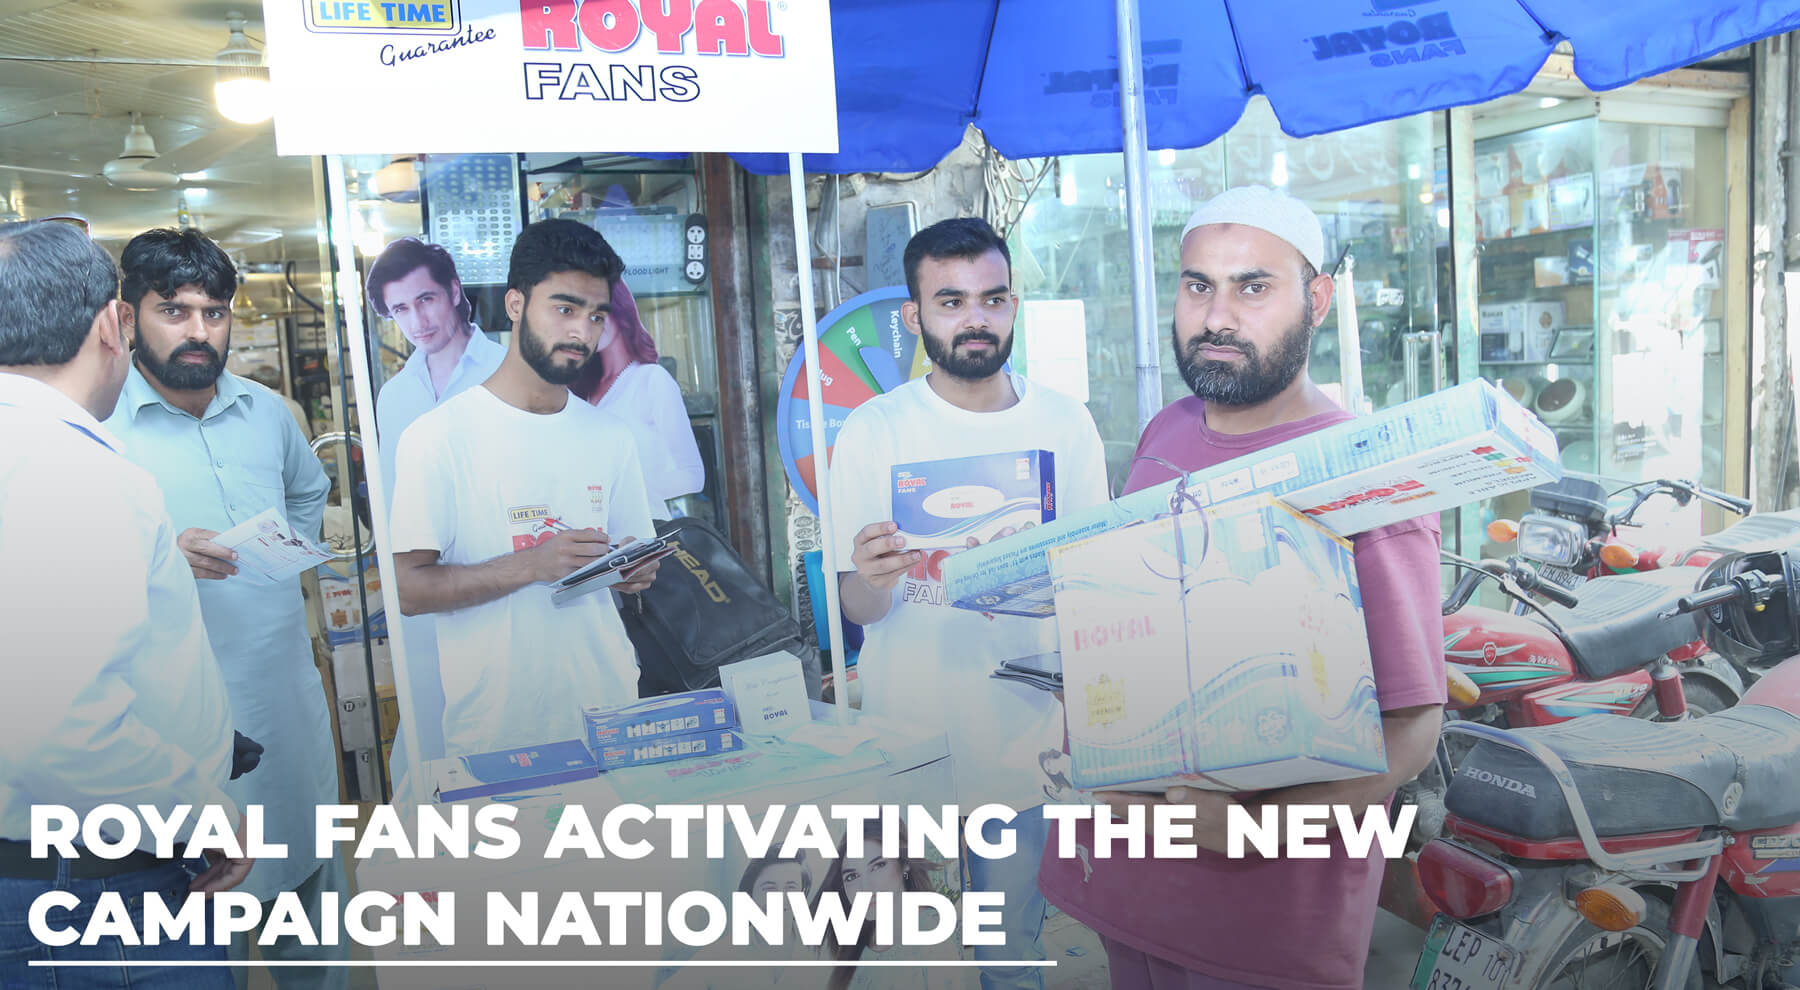 Nationwide Brand Activation